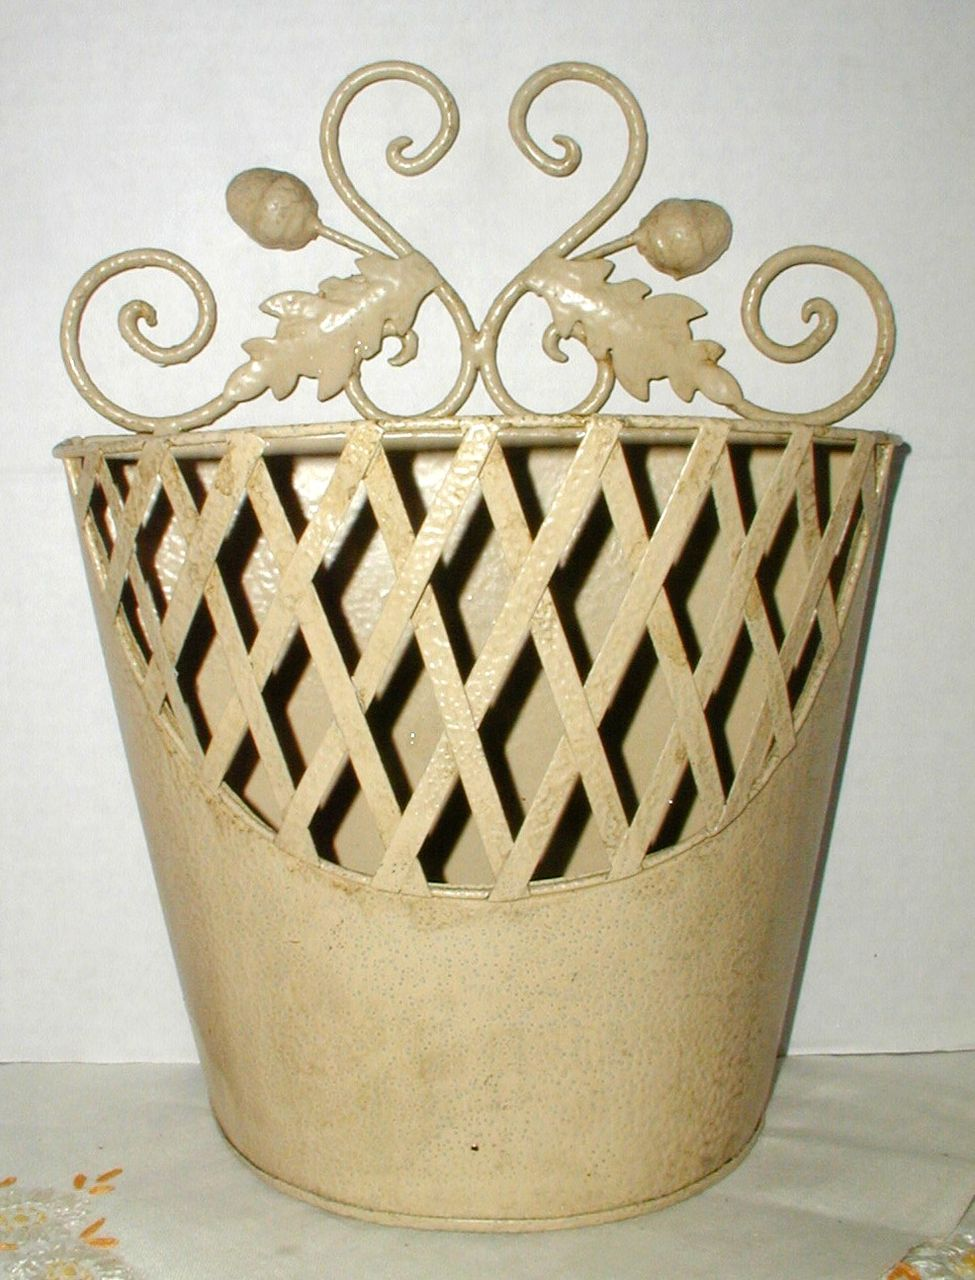 Decorative Metal Planter or Letter Holder